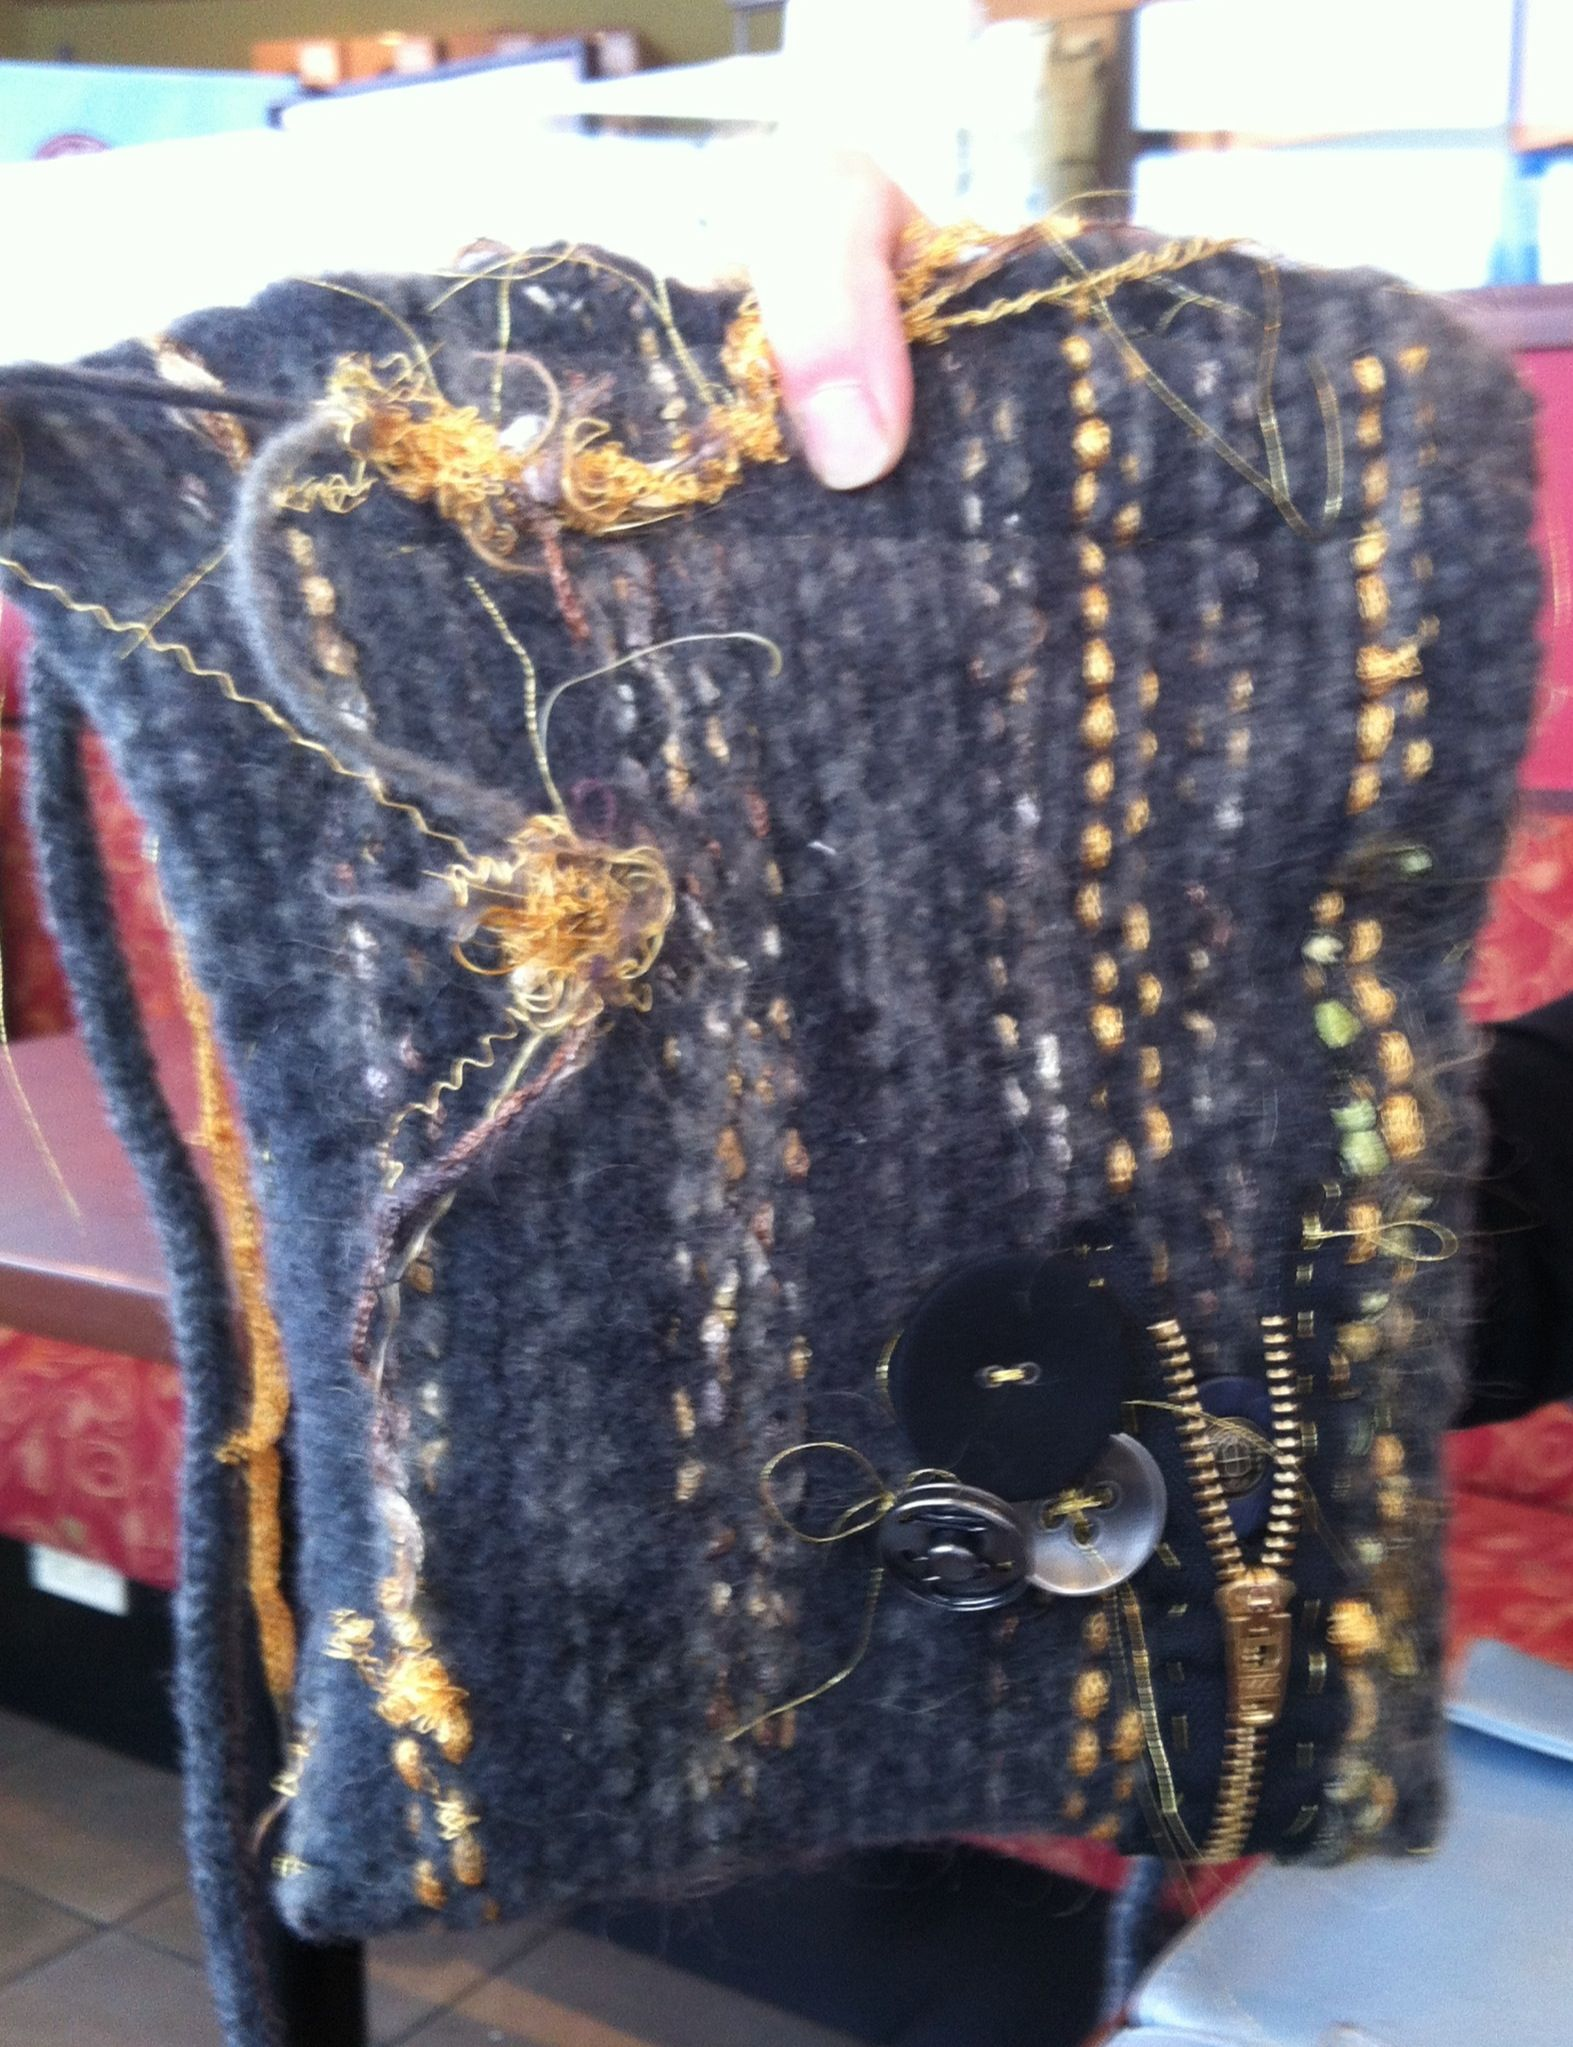 Cool knitted handmade bags by SHIRLEY FRASER